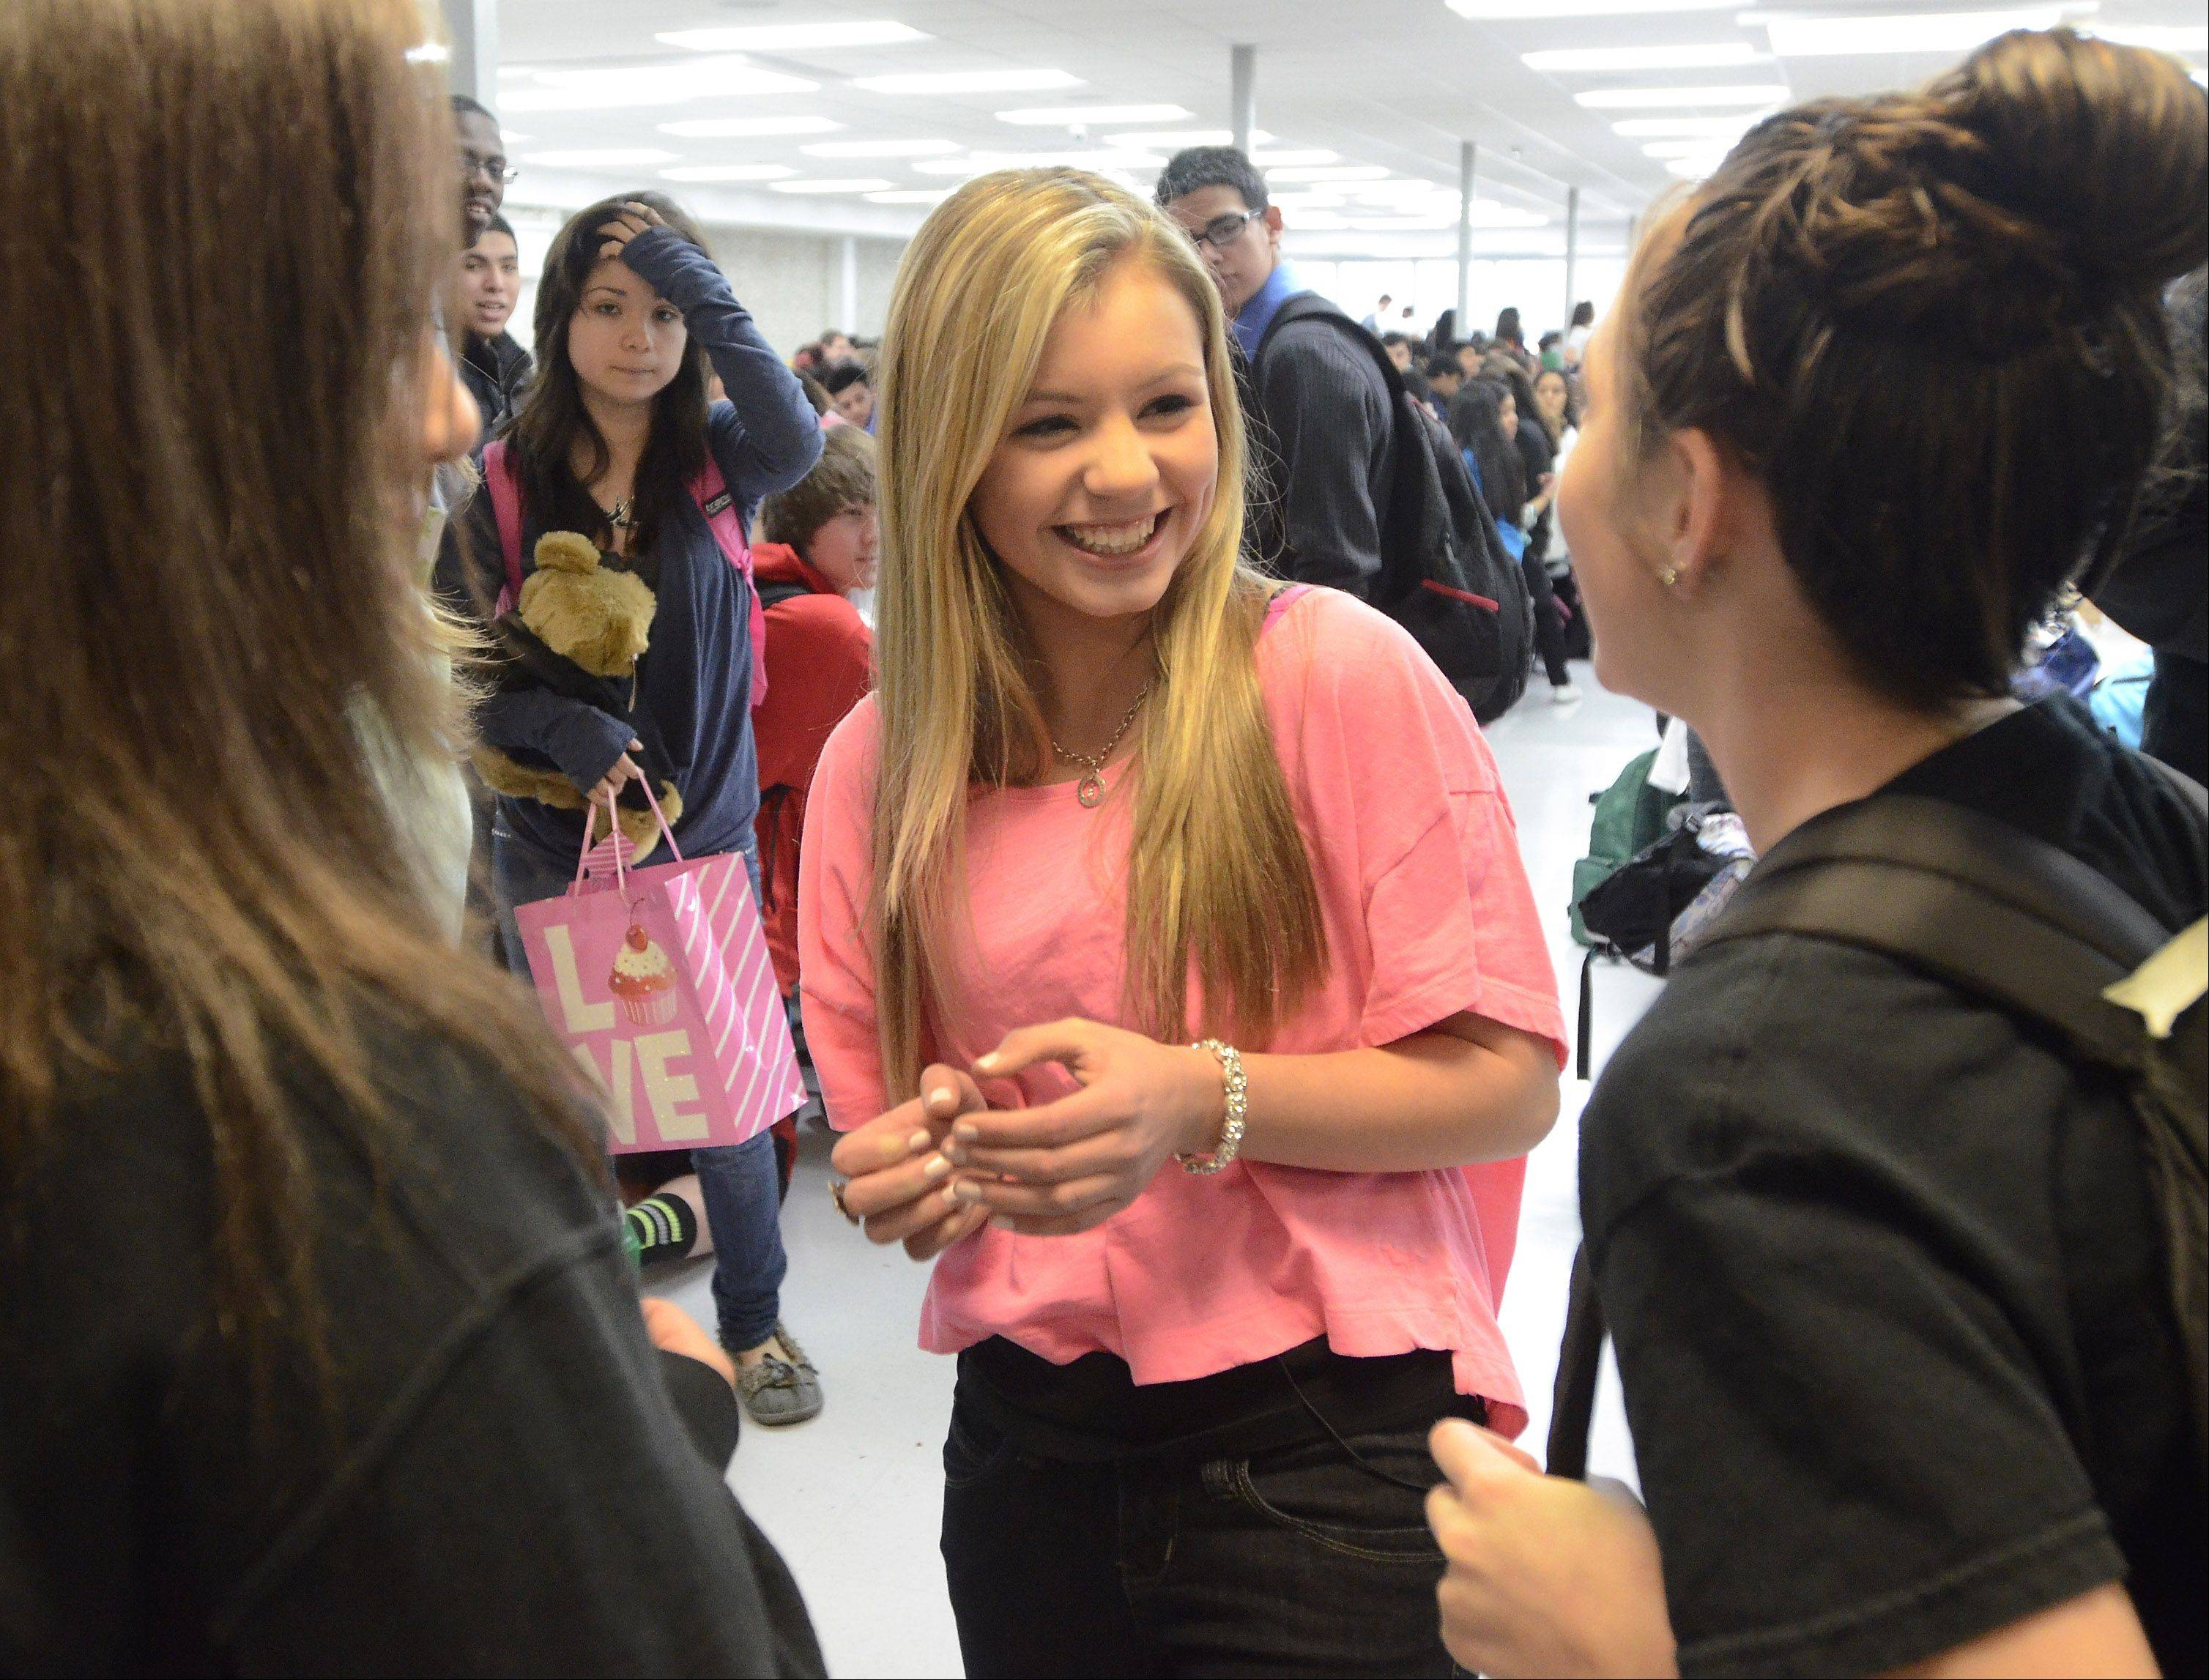 14-year-old Taylor Matos talks with friends Gabby Vasquez, left, and Mia Picchi.